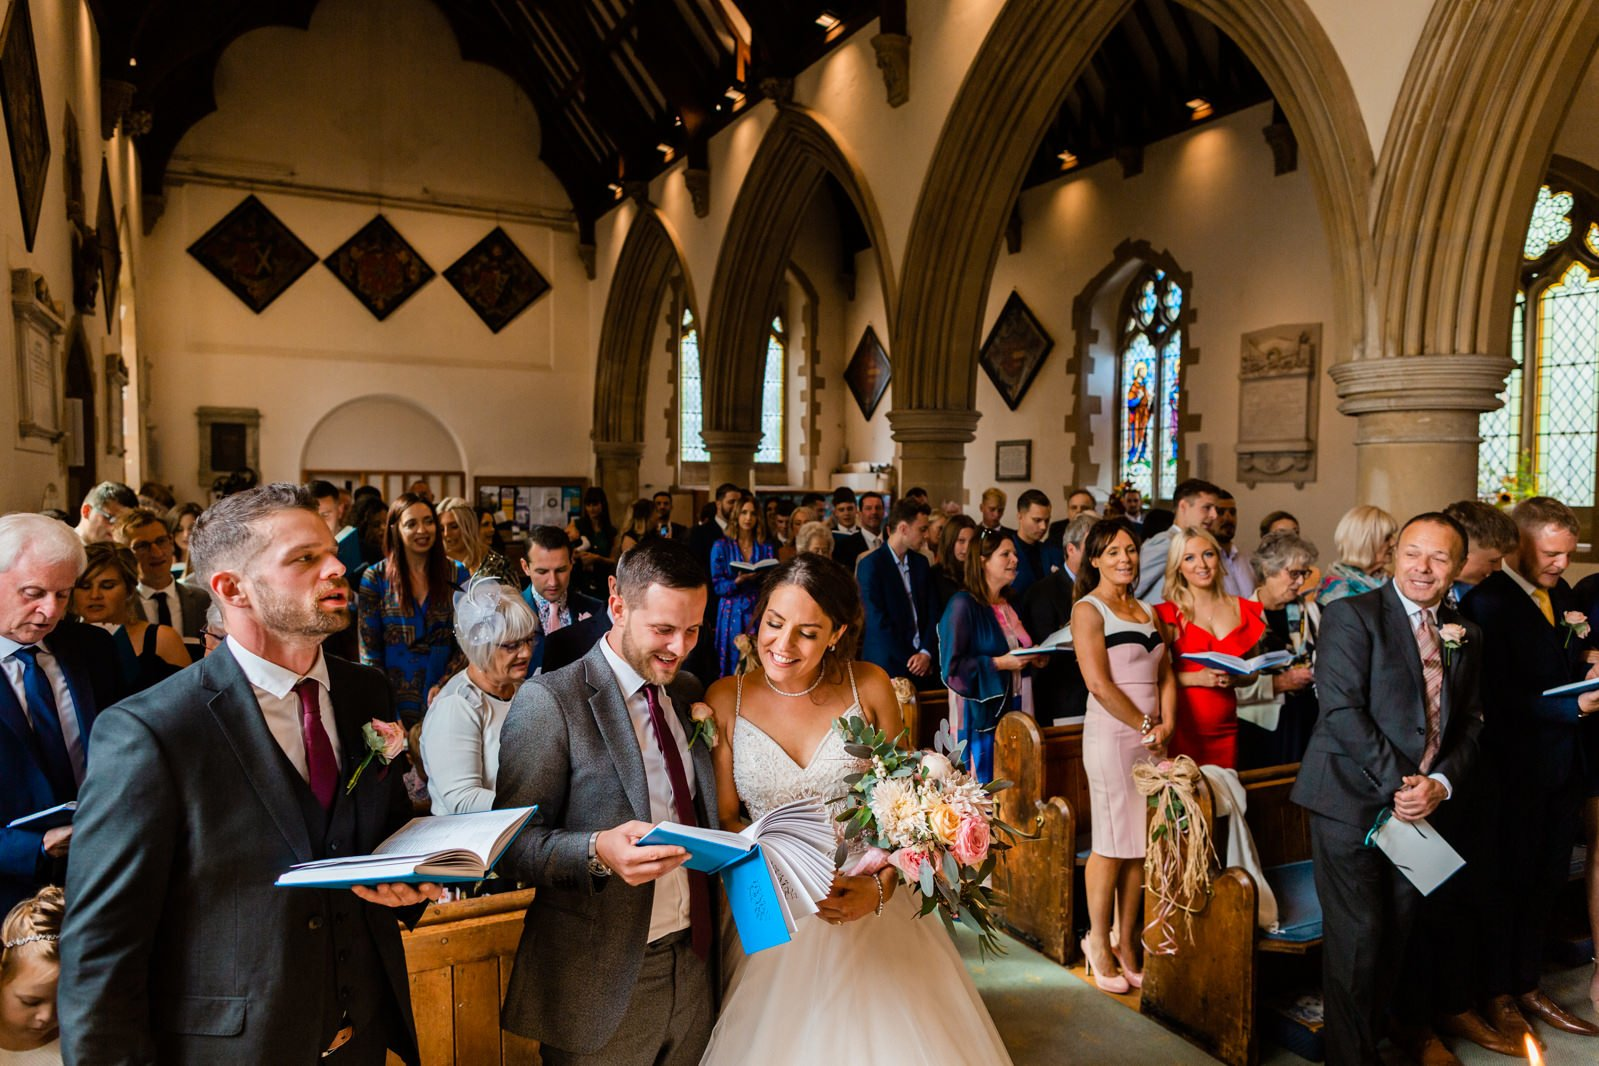 The Elephant Pangbourne Wedding - Stunning Kayleigh & Shane 35